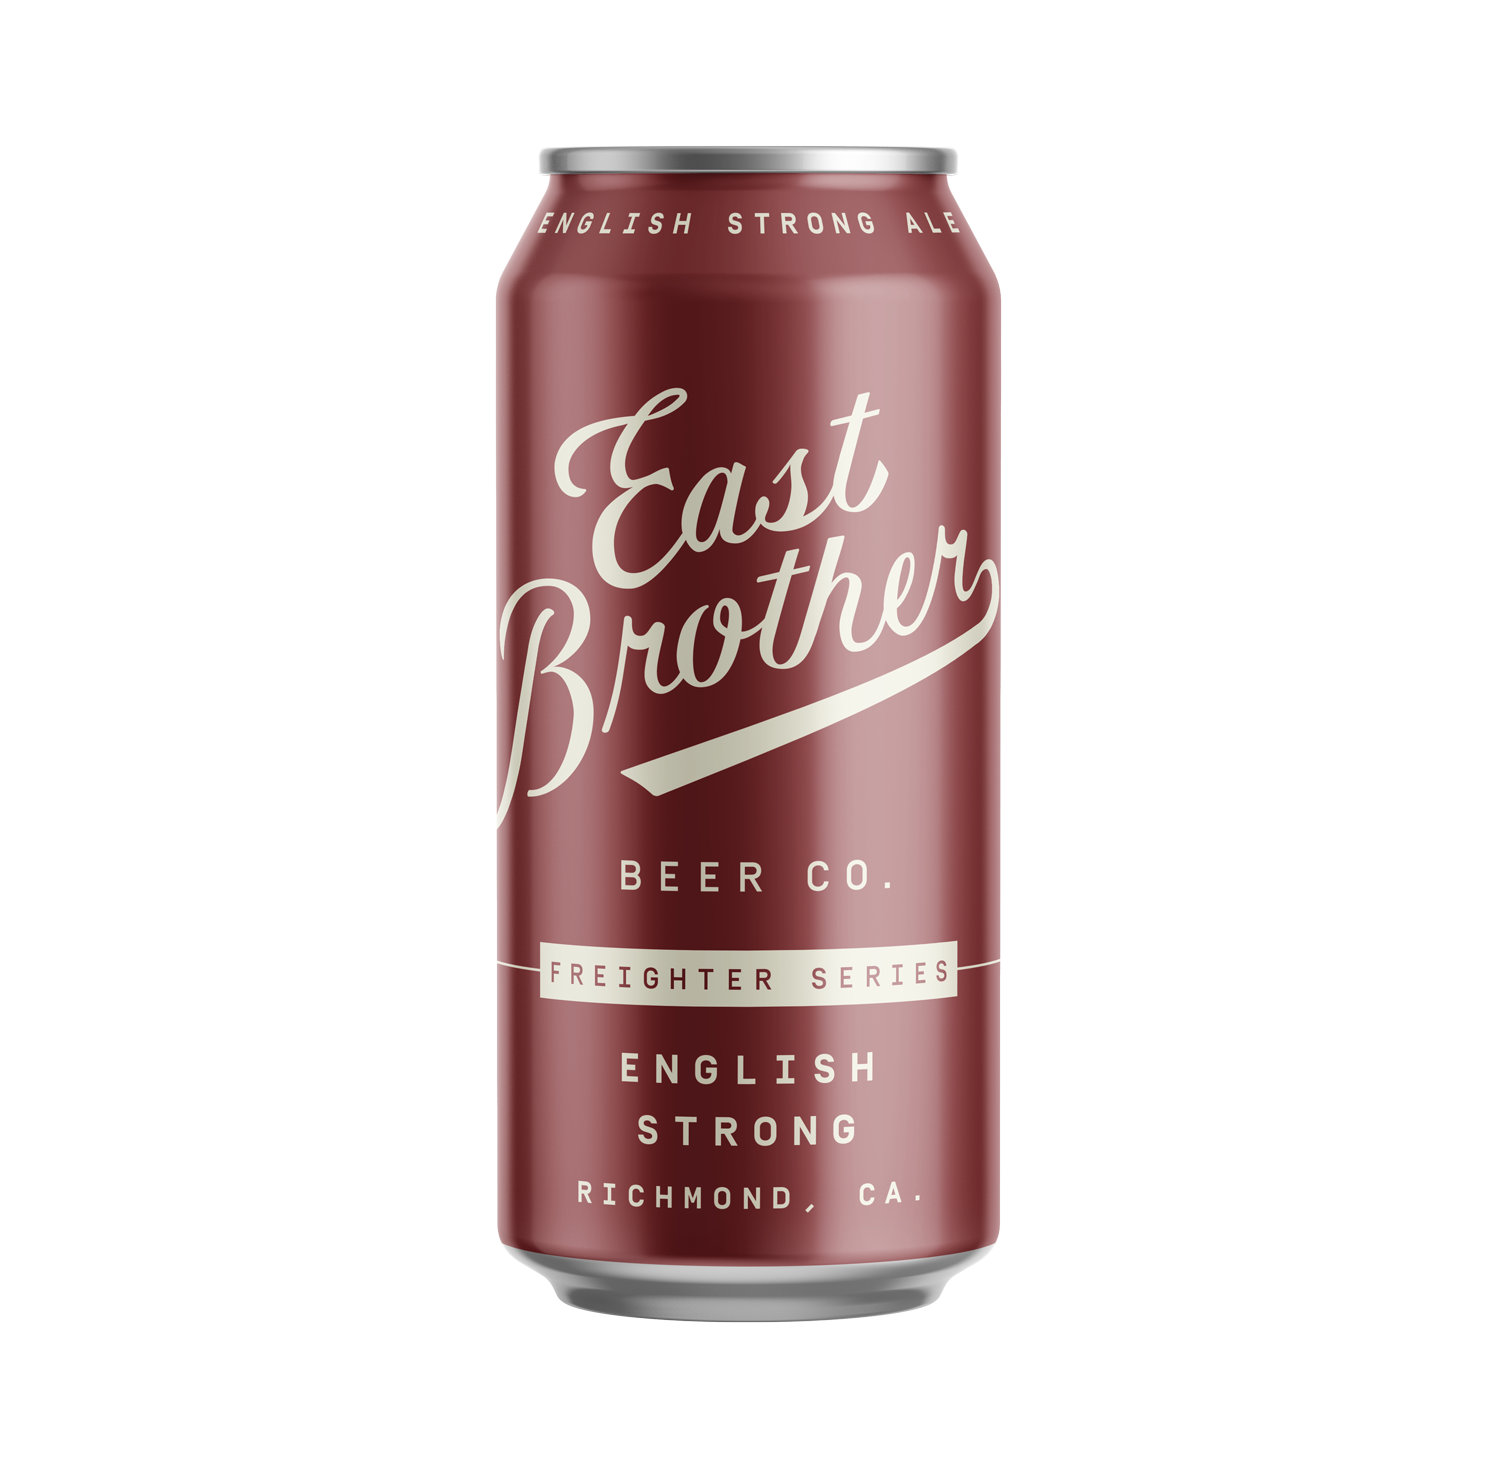 ENGLISH STRONG - Available: SpringNotably British. Rich malt flavor. Notes of caramel and dark-fruit. Stick-to-your-bones warmth.7.8% ABV.